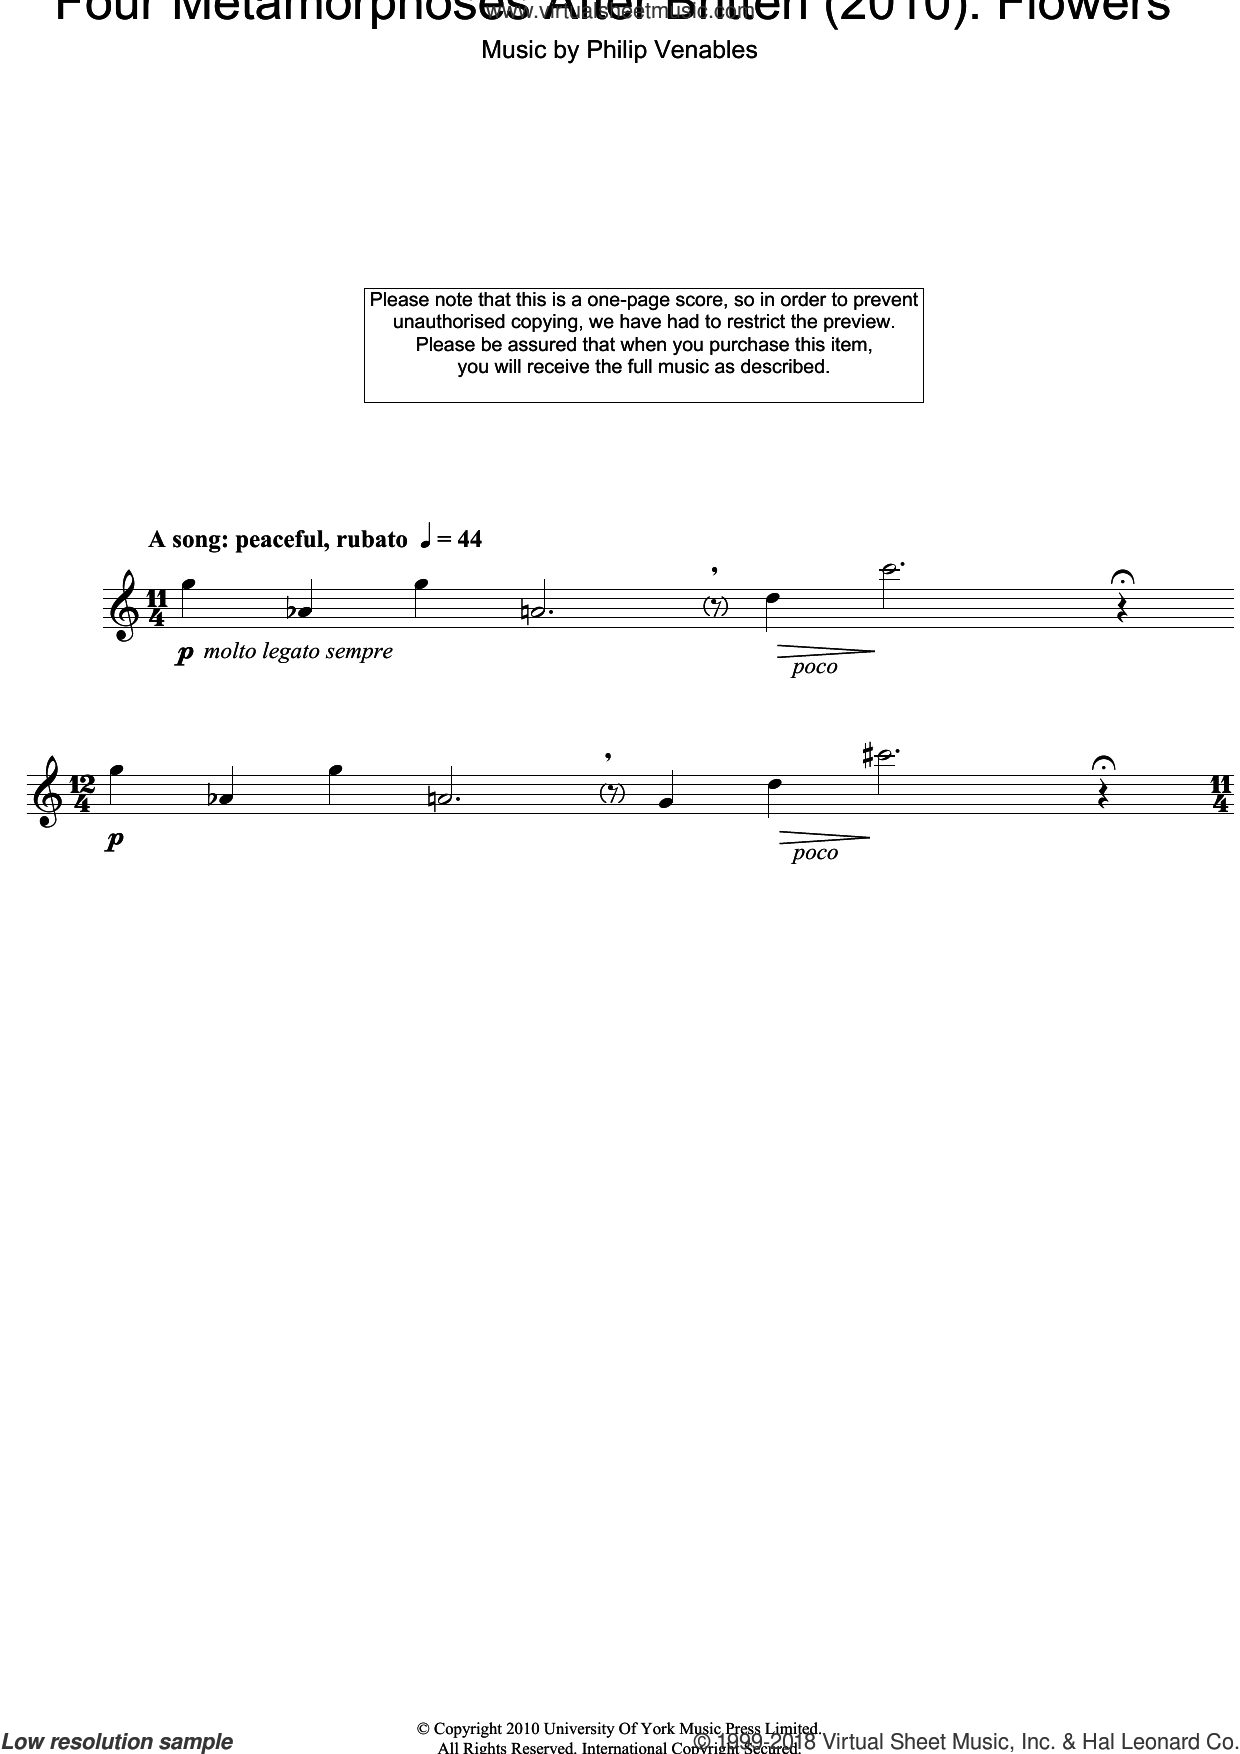 Four Metamorphoses After Britten (2010): Flowers sheet music for oboe solo by Philip Venables, classical score, intermediate skill level